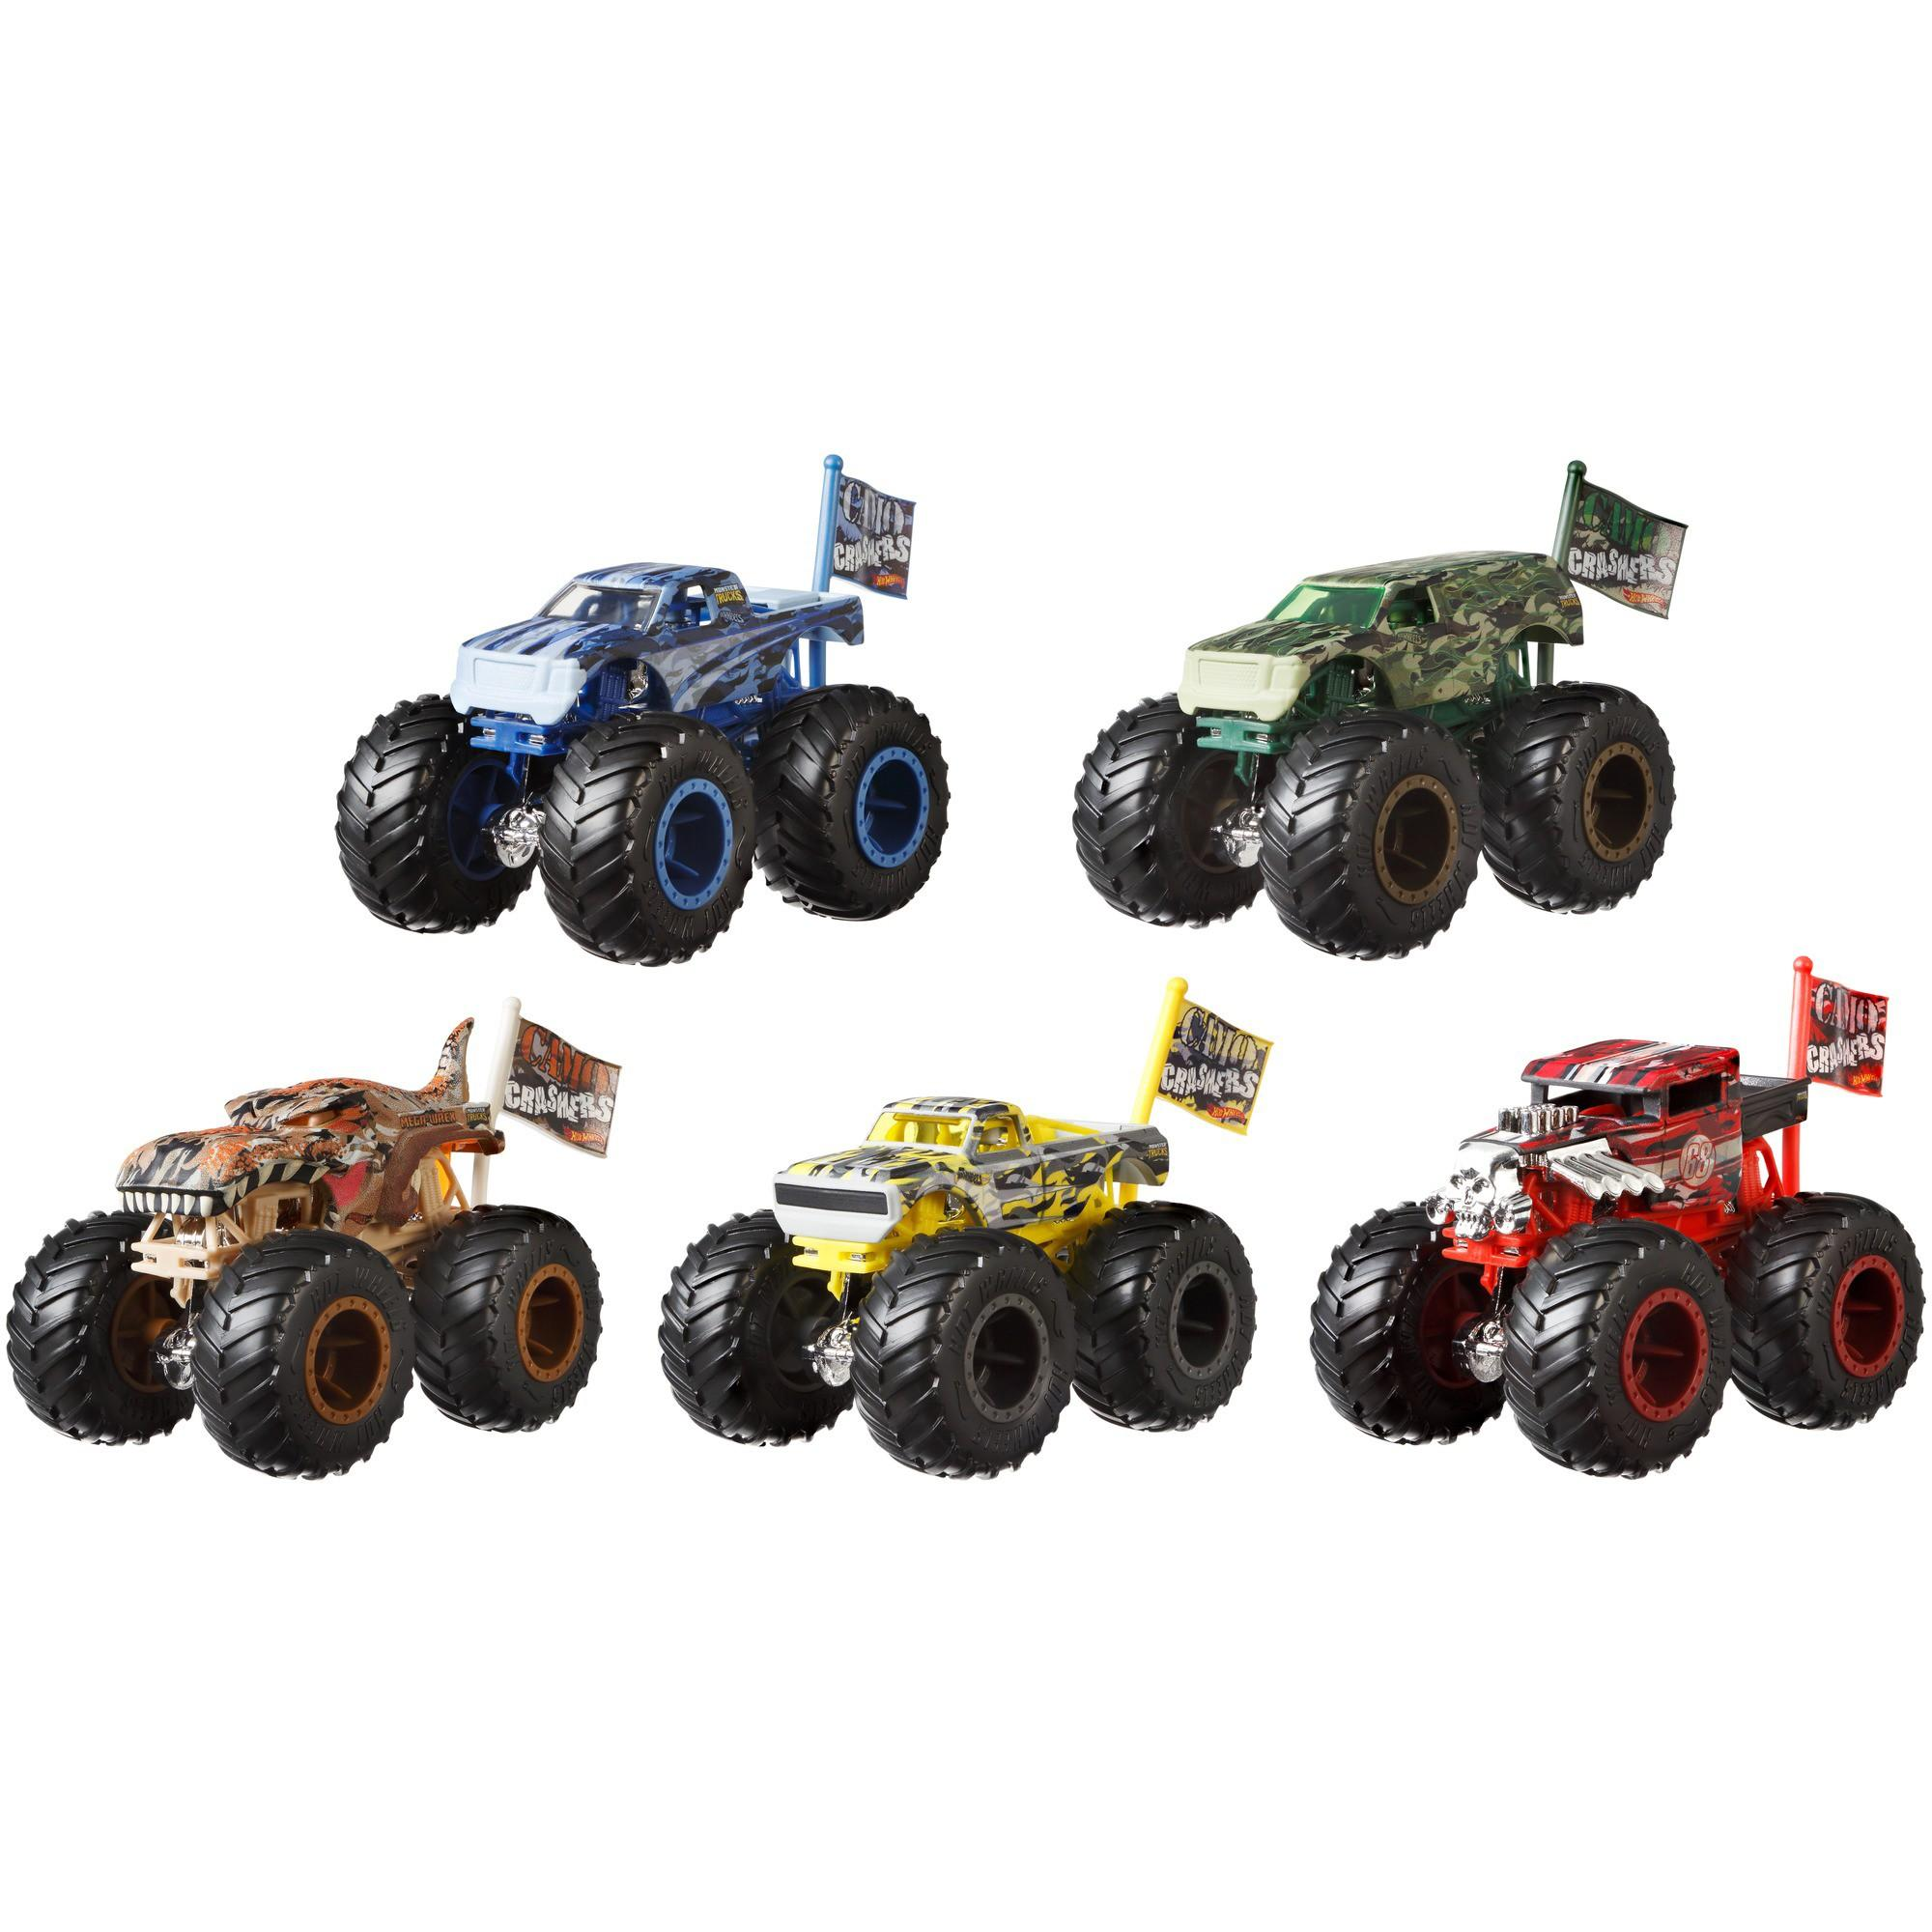 Hot Wheels Monster Trucks 1:64 Scale Camo Crashers Die-Cast Vehicle (Styles May Vary) by Mattel